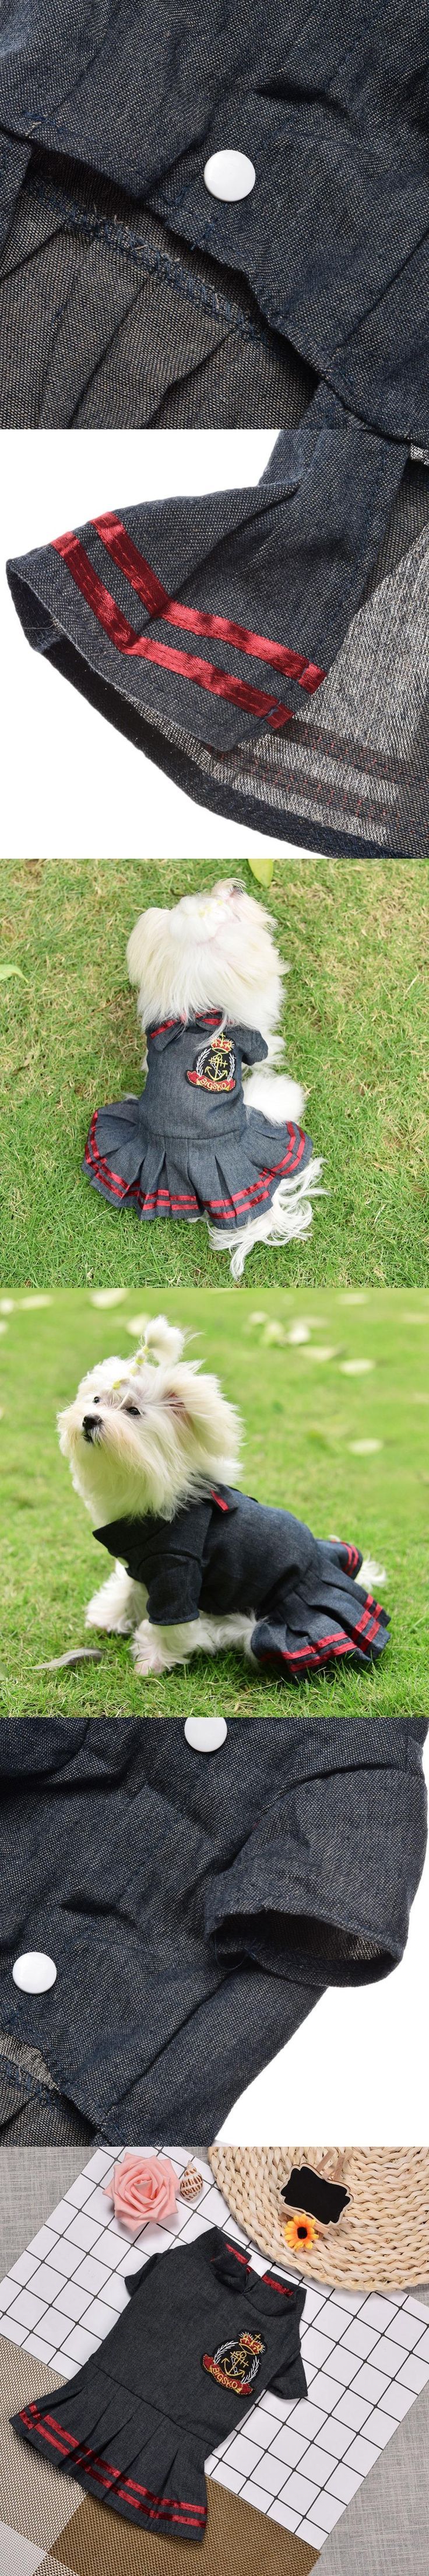 New campus style skirt,Cotton Blend material,Suitable for casual party,spring summer use,prevent skin disease,give dogs protect